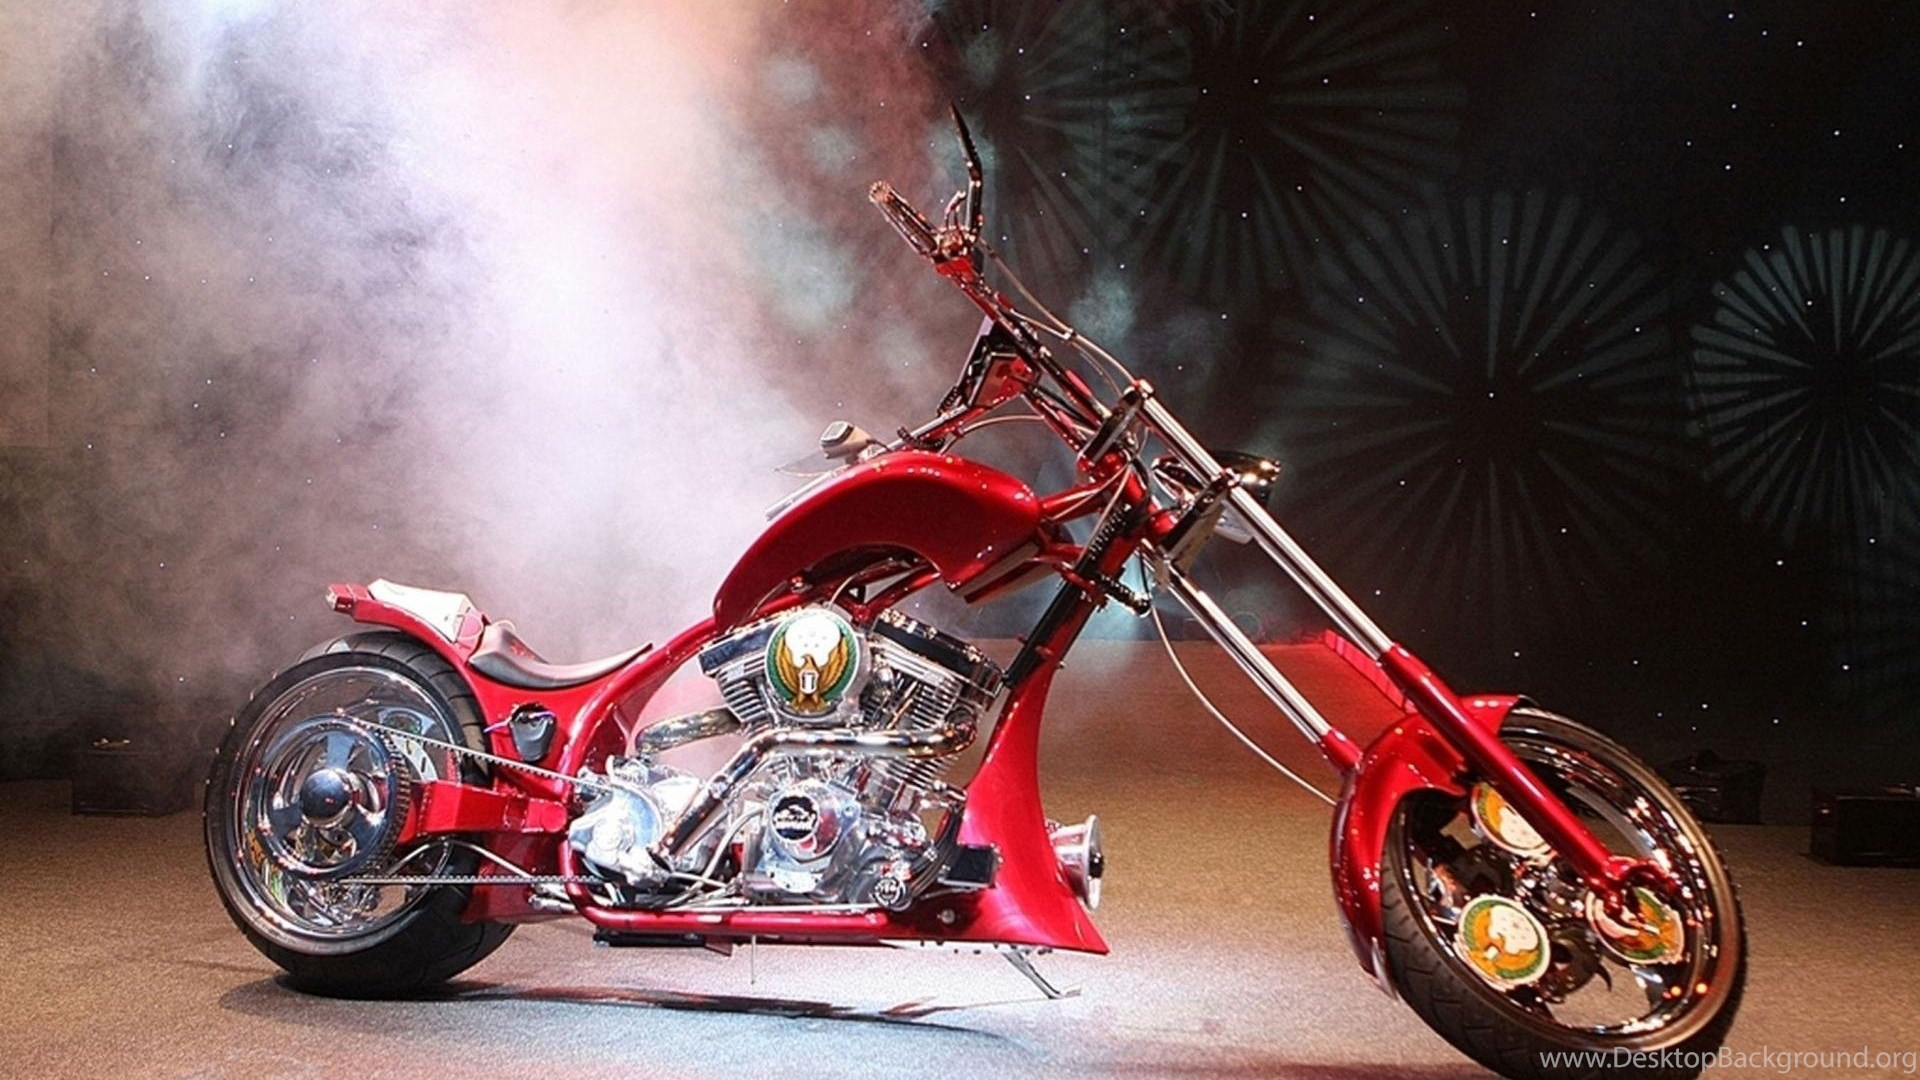 Motorcycle Occ Bike Red Hd Car 283389 Wallpapers Wallpapers